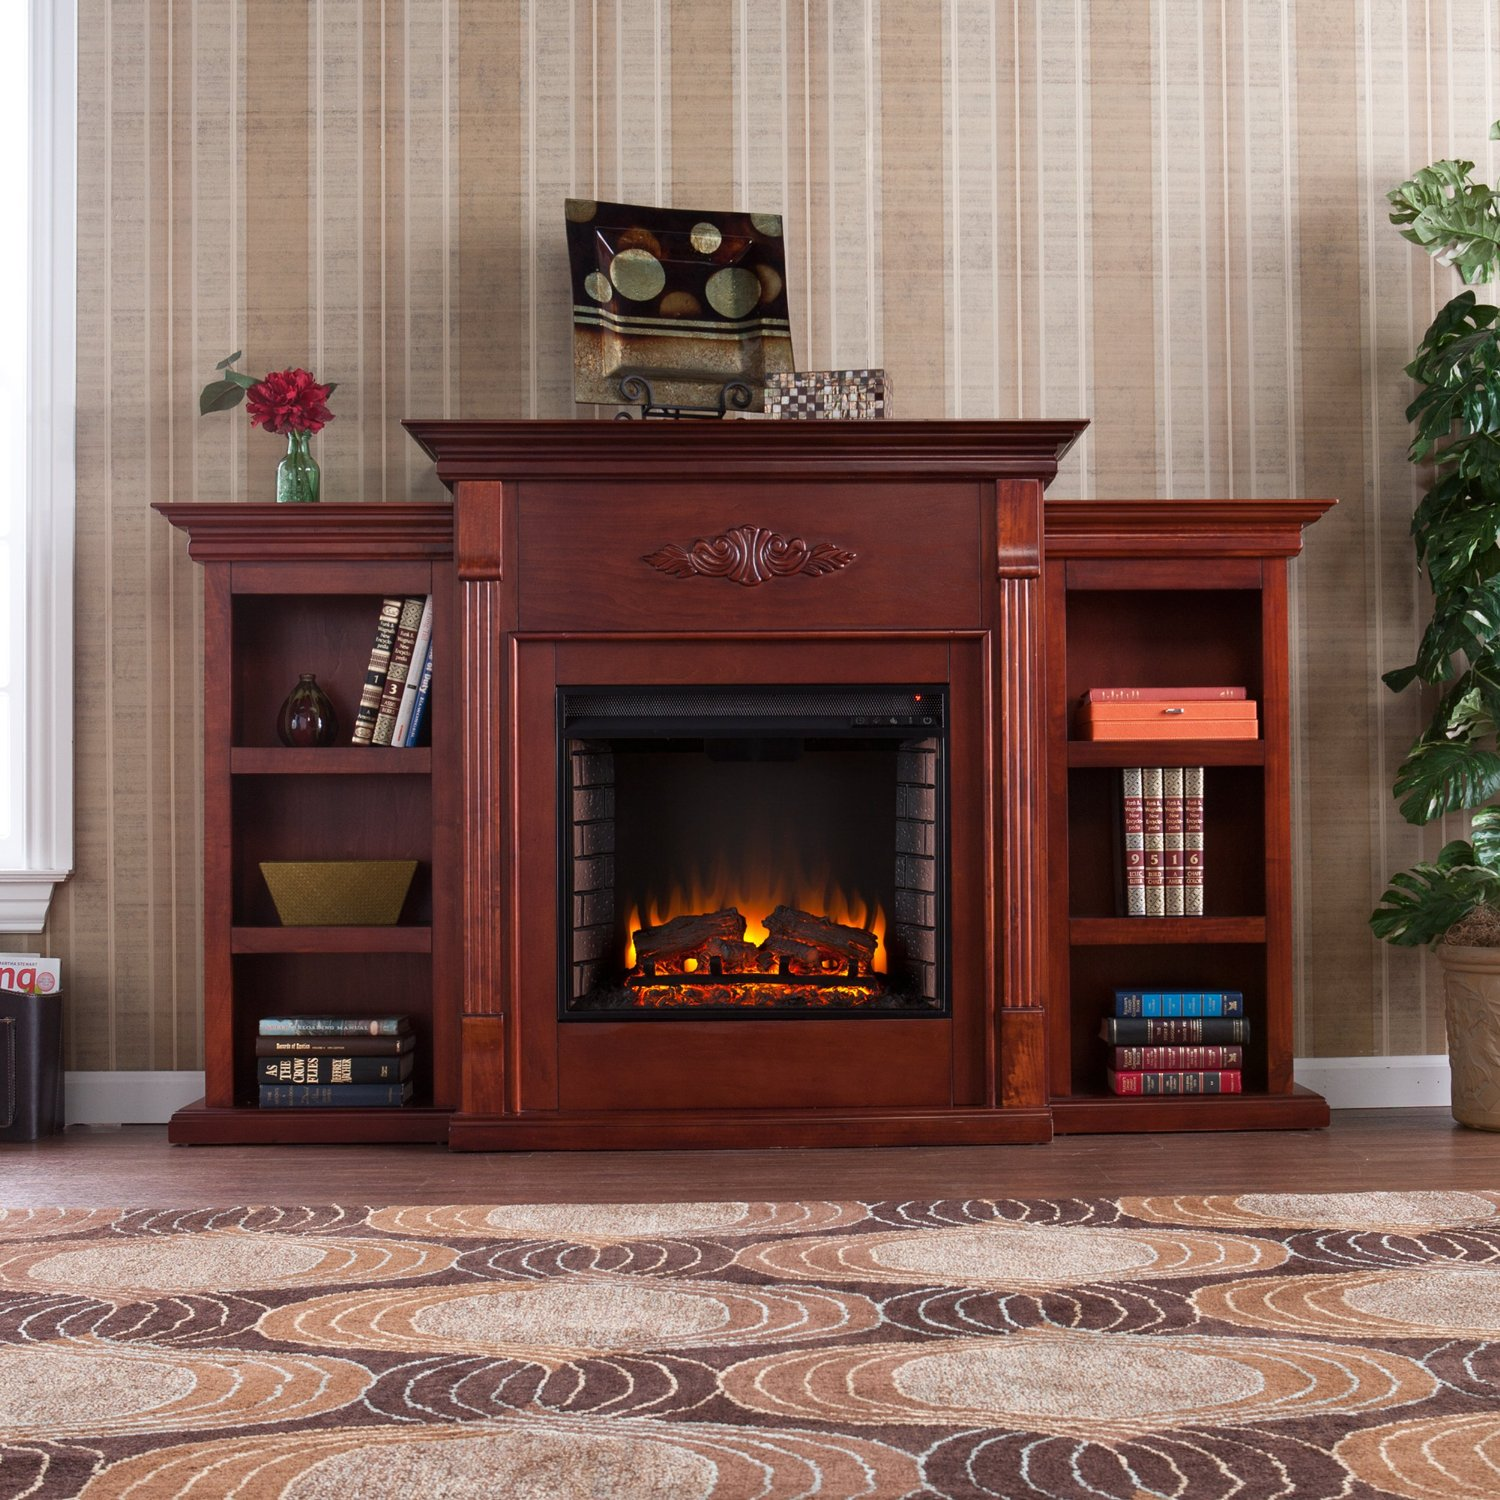 Natural Gas Fireplace During Power Outage Chimney Products . Lennox Gas Fireplace  Dealers ... - Majestic Gas Fireplace Repair In Vaughan 416 900 3446 Lennox Gas